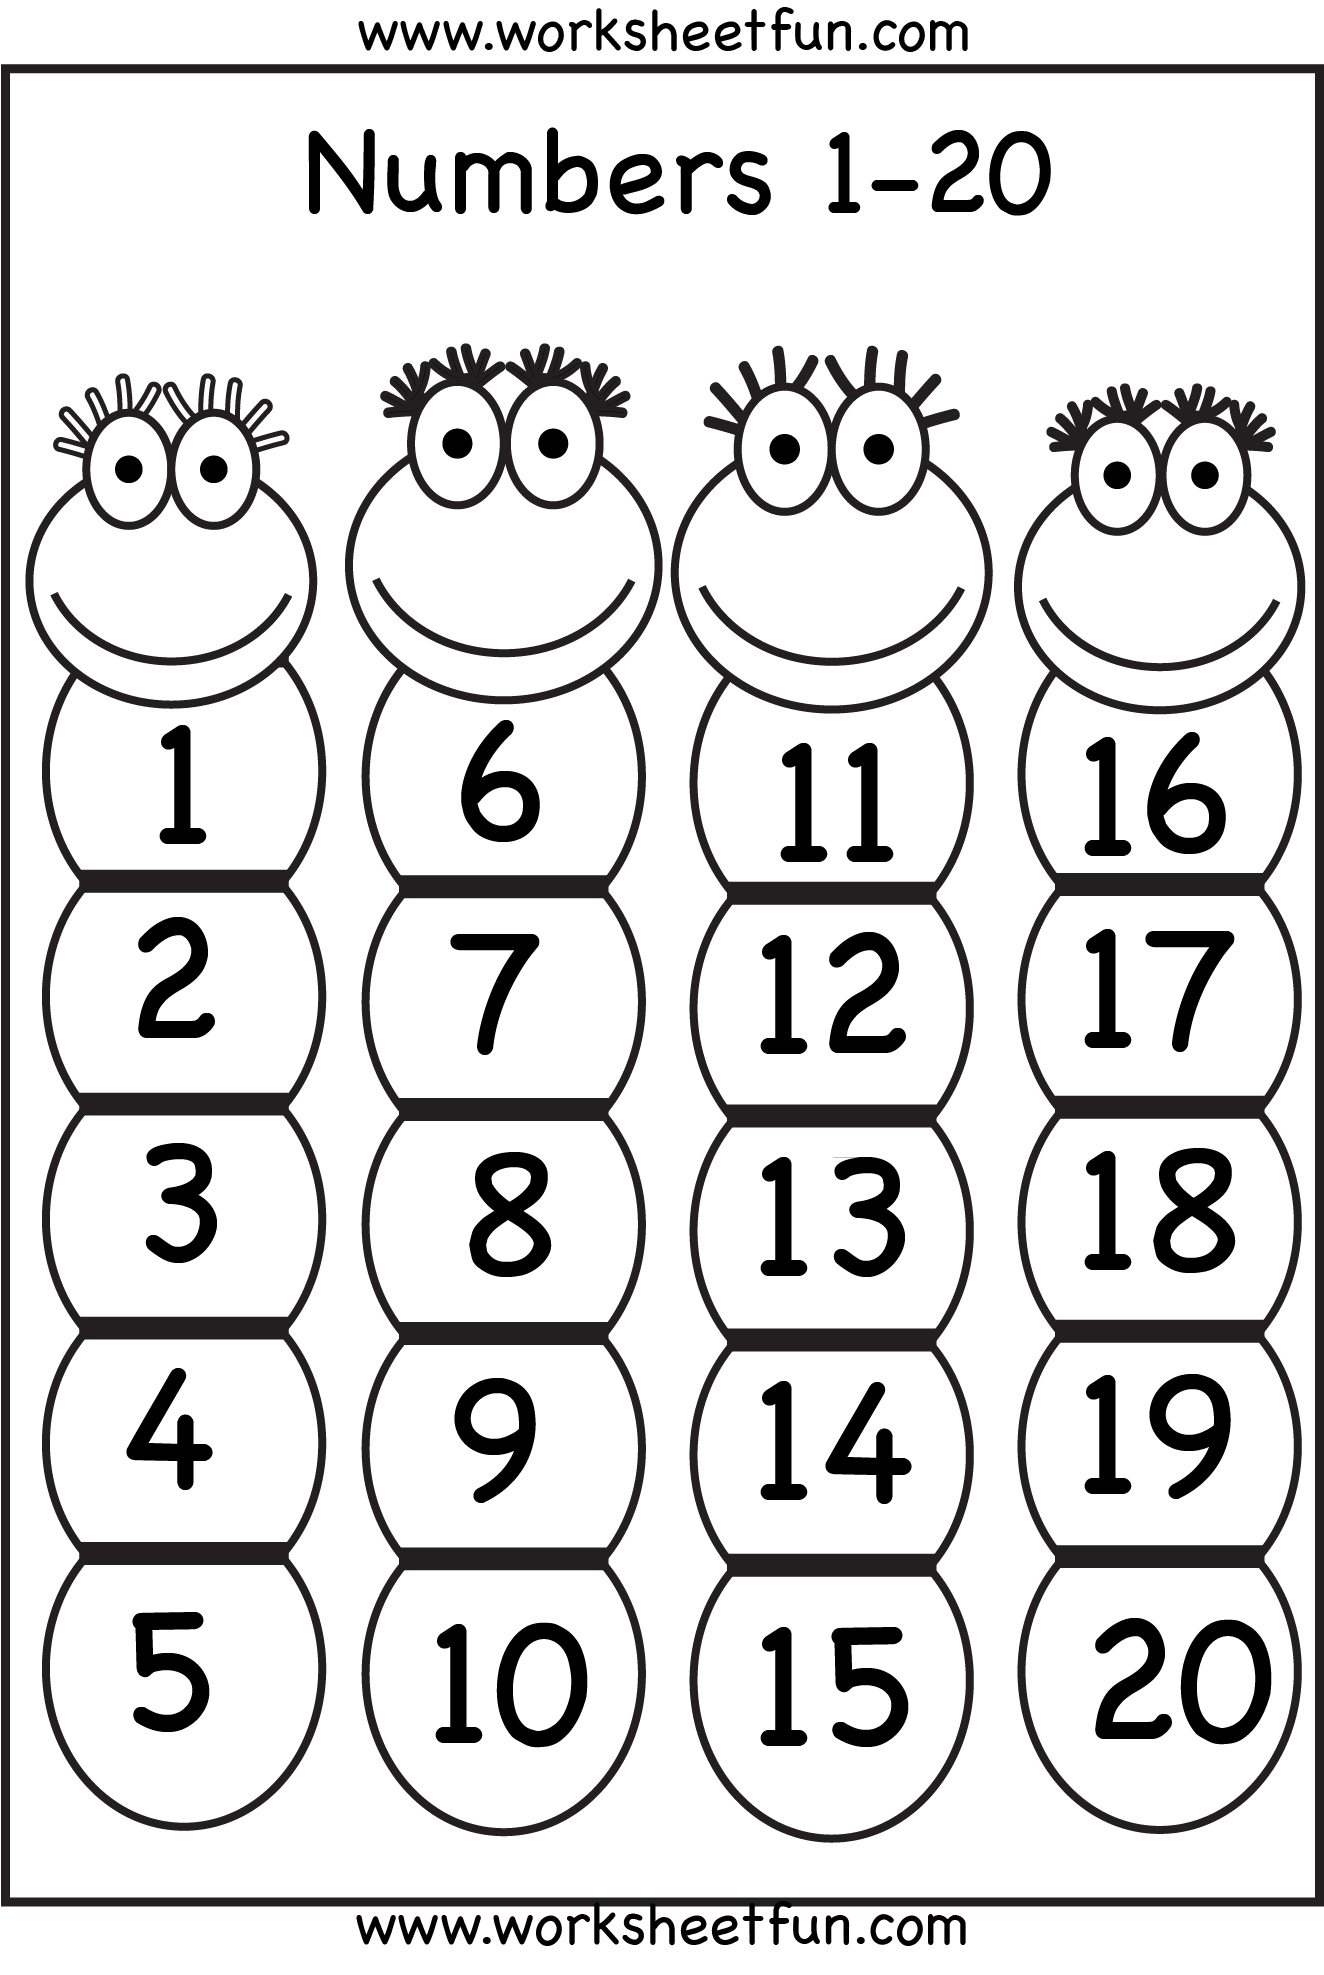 Numbers 1-20 | Printable Worksheets | Pinterest | Number chart, Math ...